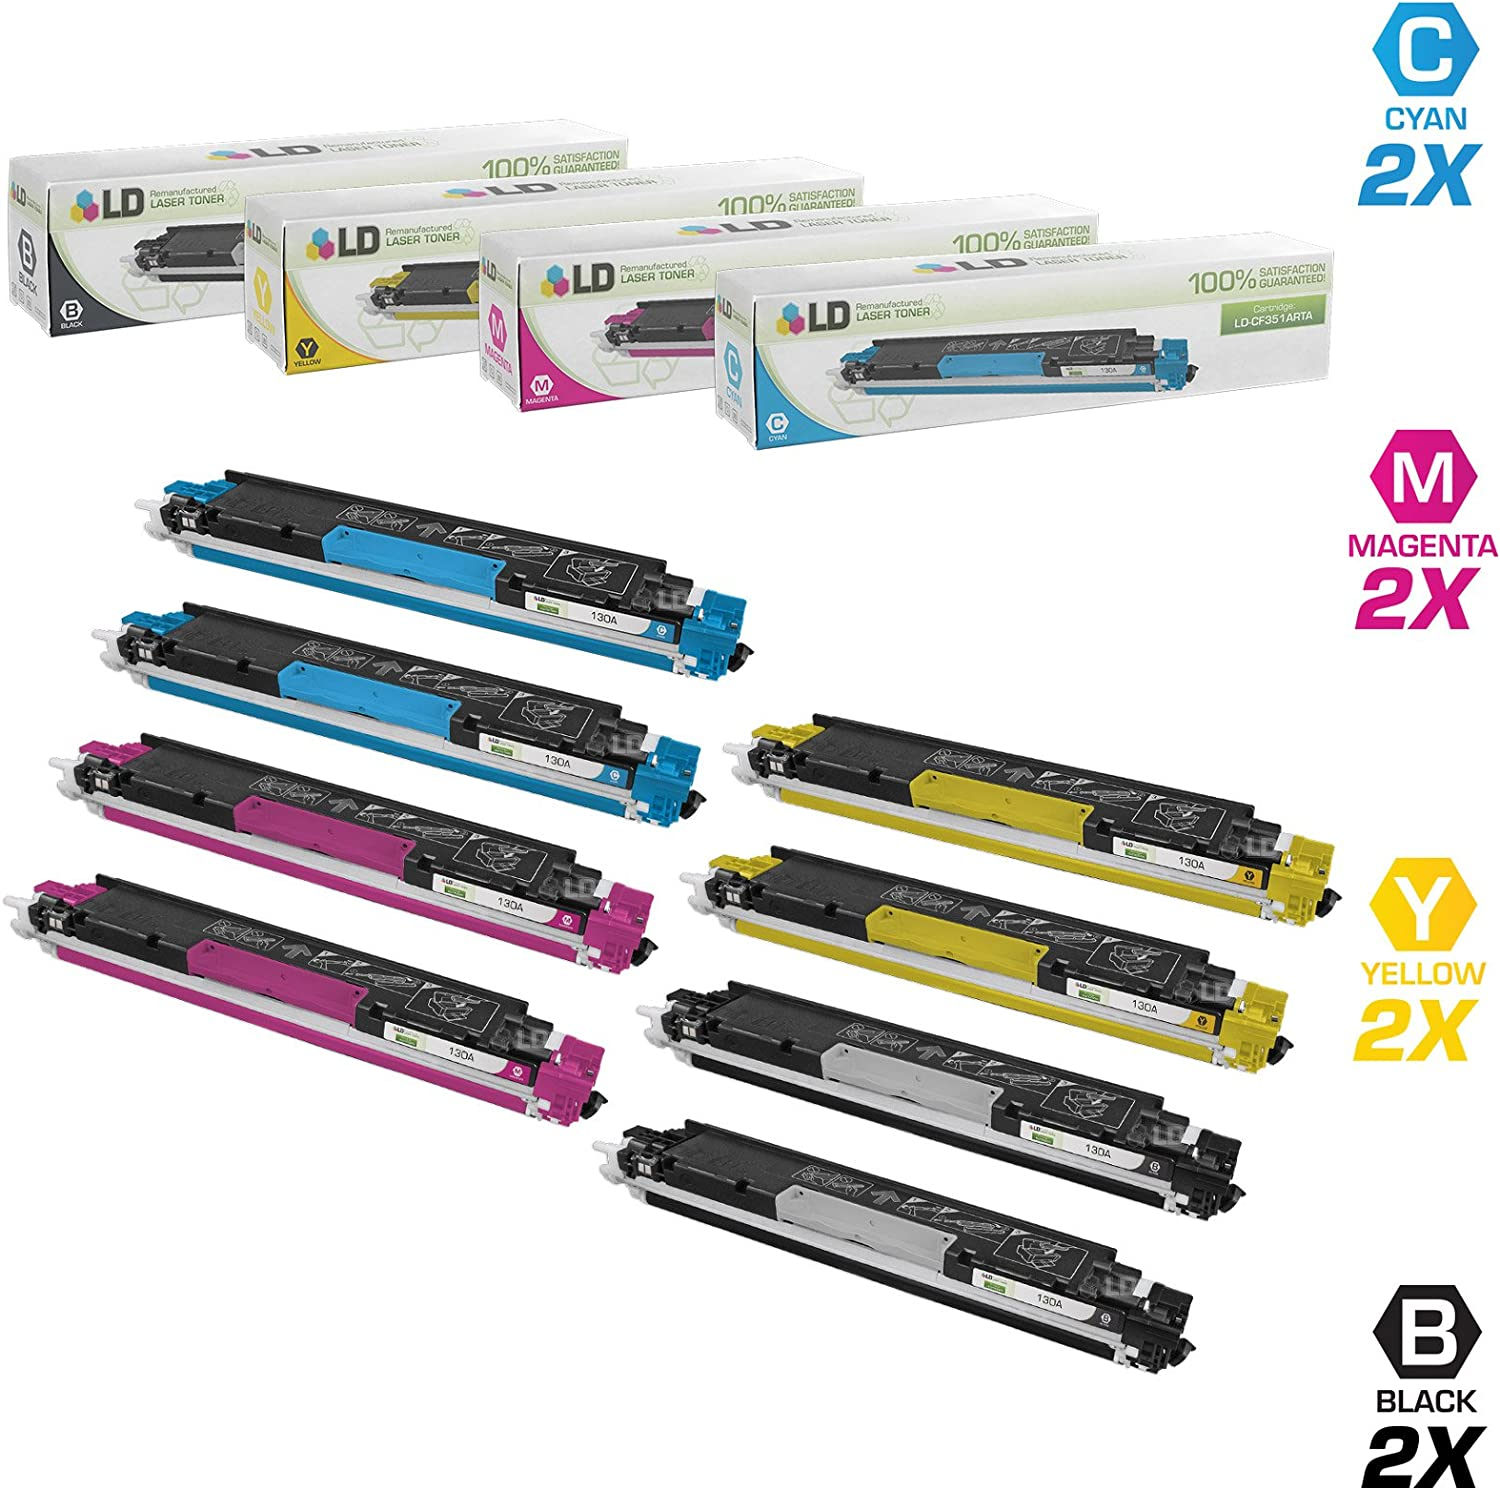 LD Remanufactured Toner Cartridge Replacement for HP 130A (2 Black, 2 Cyan, 2 Magenta, 2 Yellow, 8-Pack)